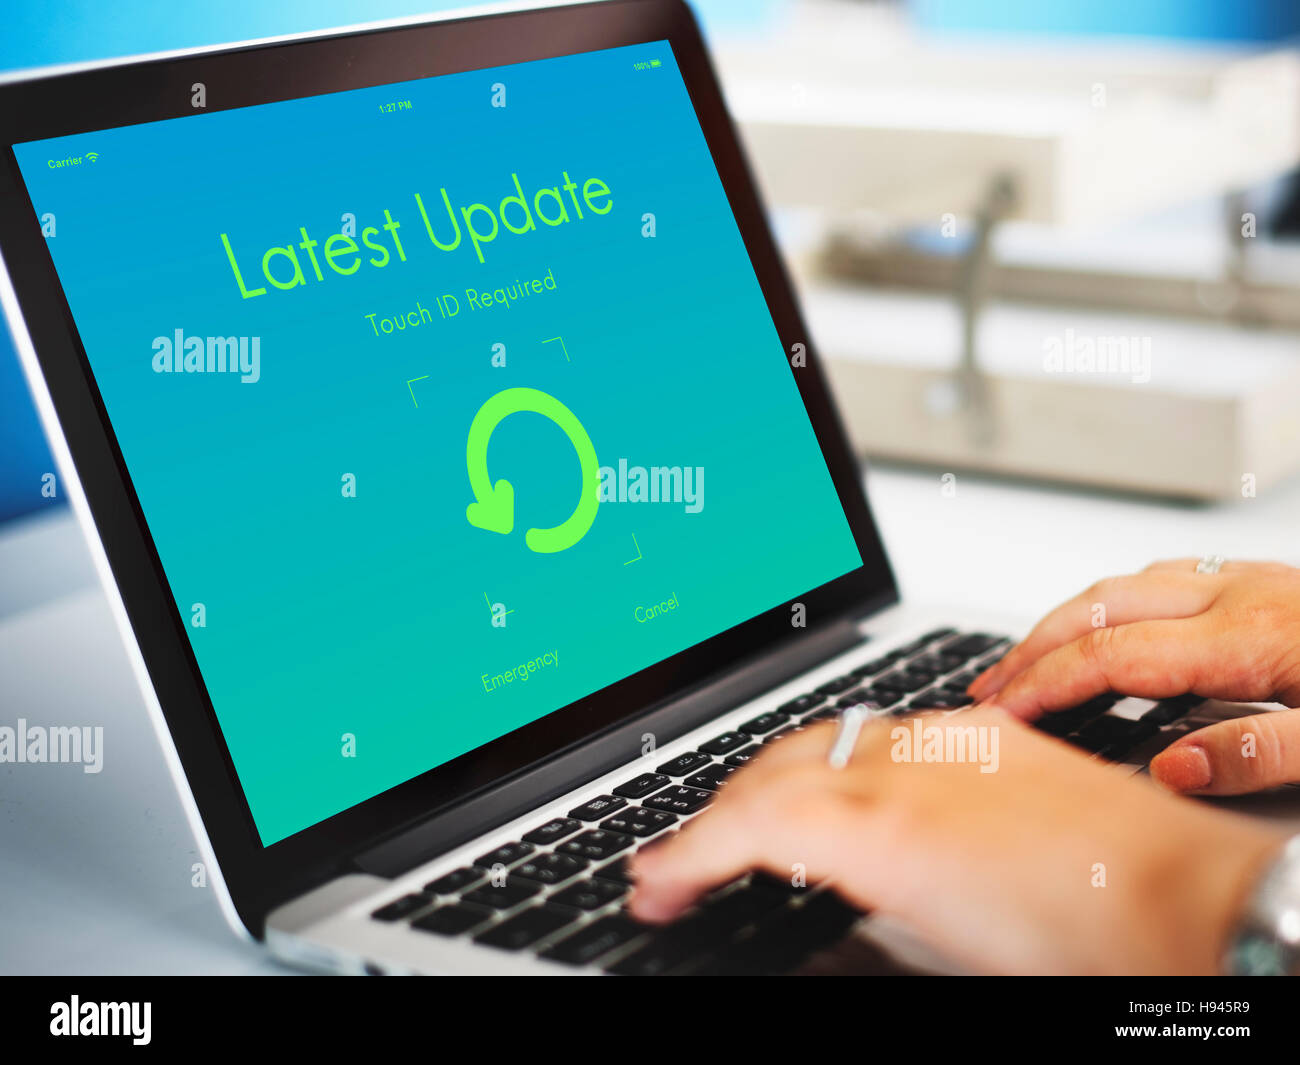 Latest Update Upgrade New Version Concept - Stock Image